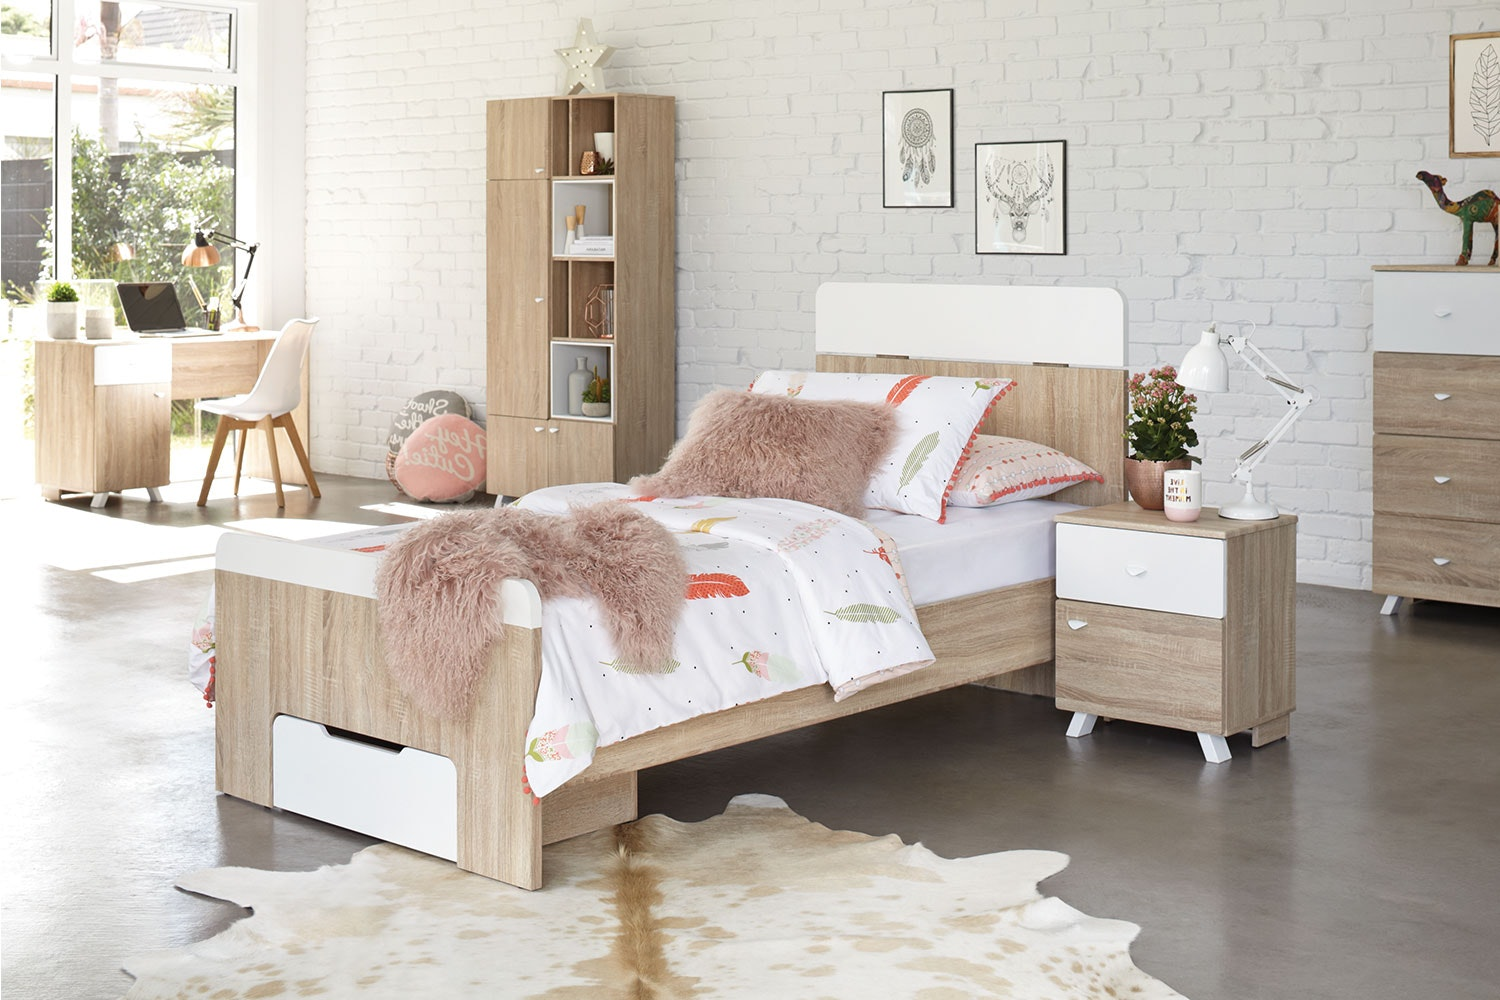 Maali King Single Bed Frame by Stoke Furniture